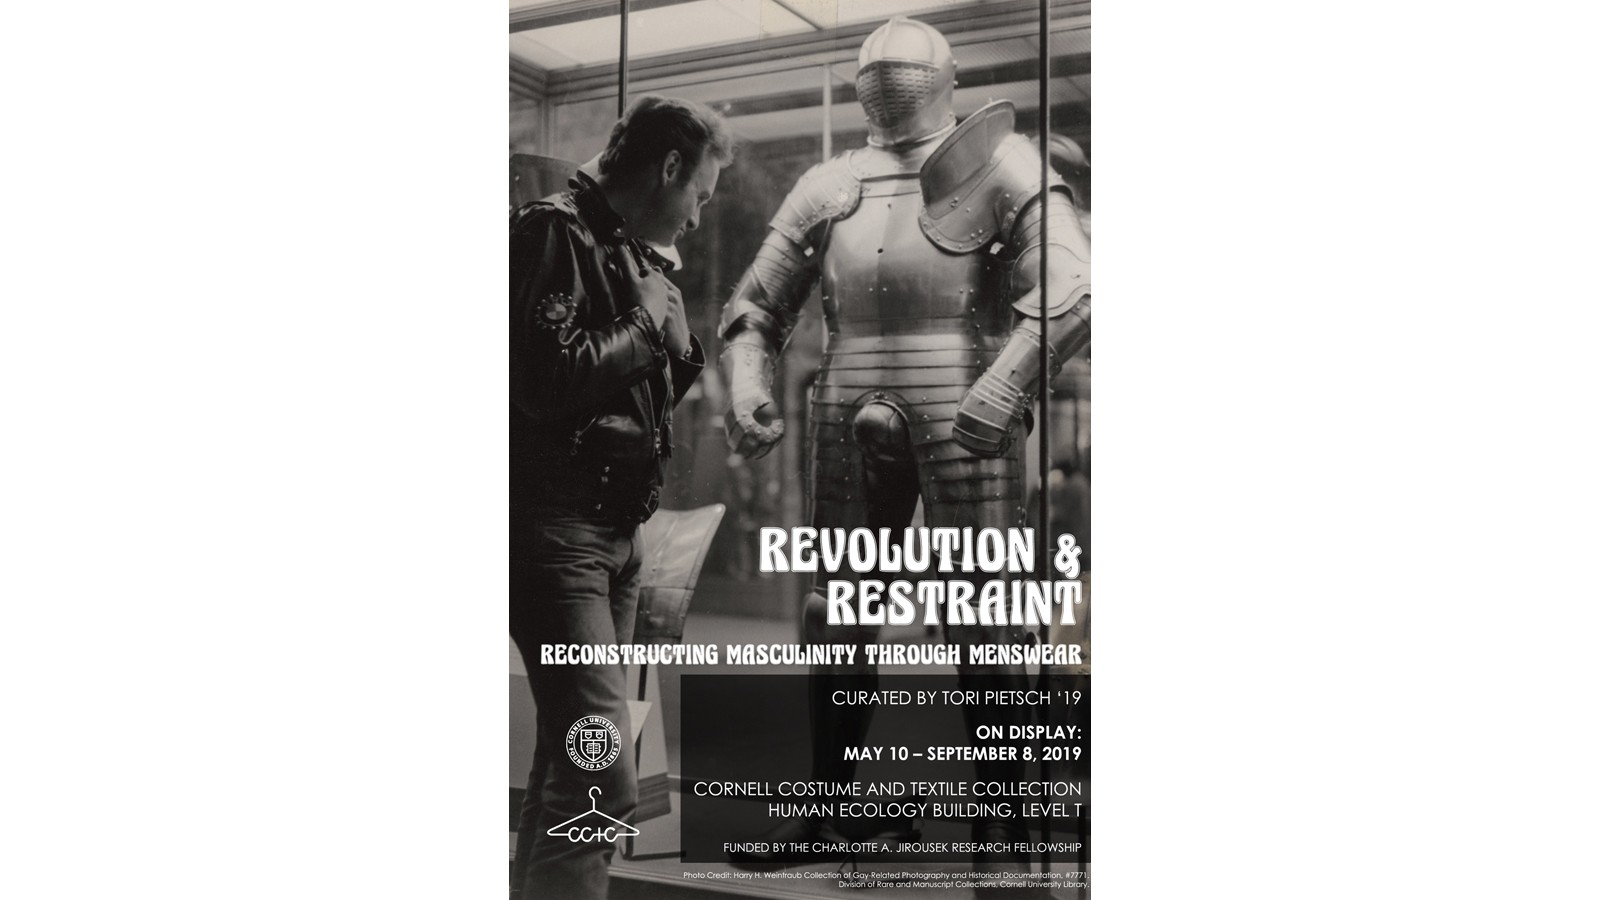 Revolution and Restraint poster